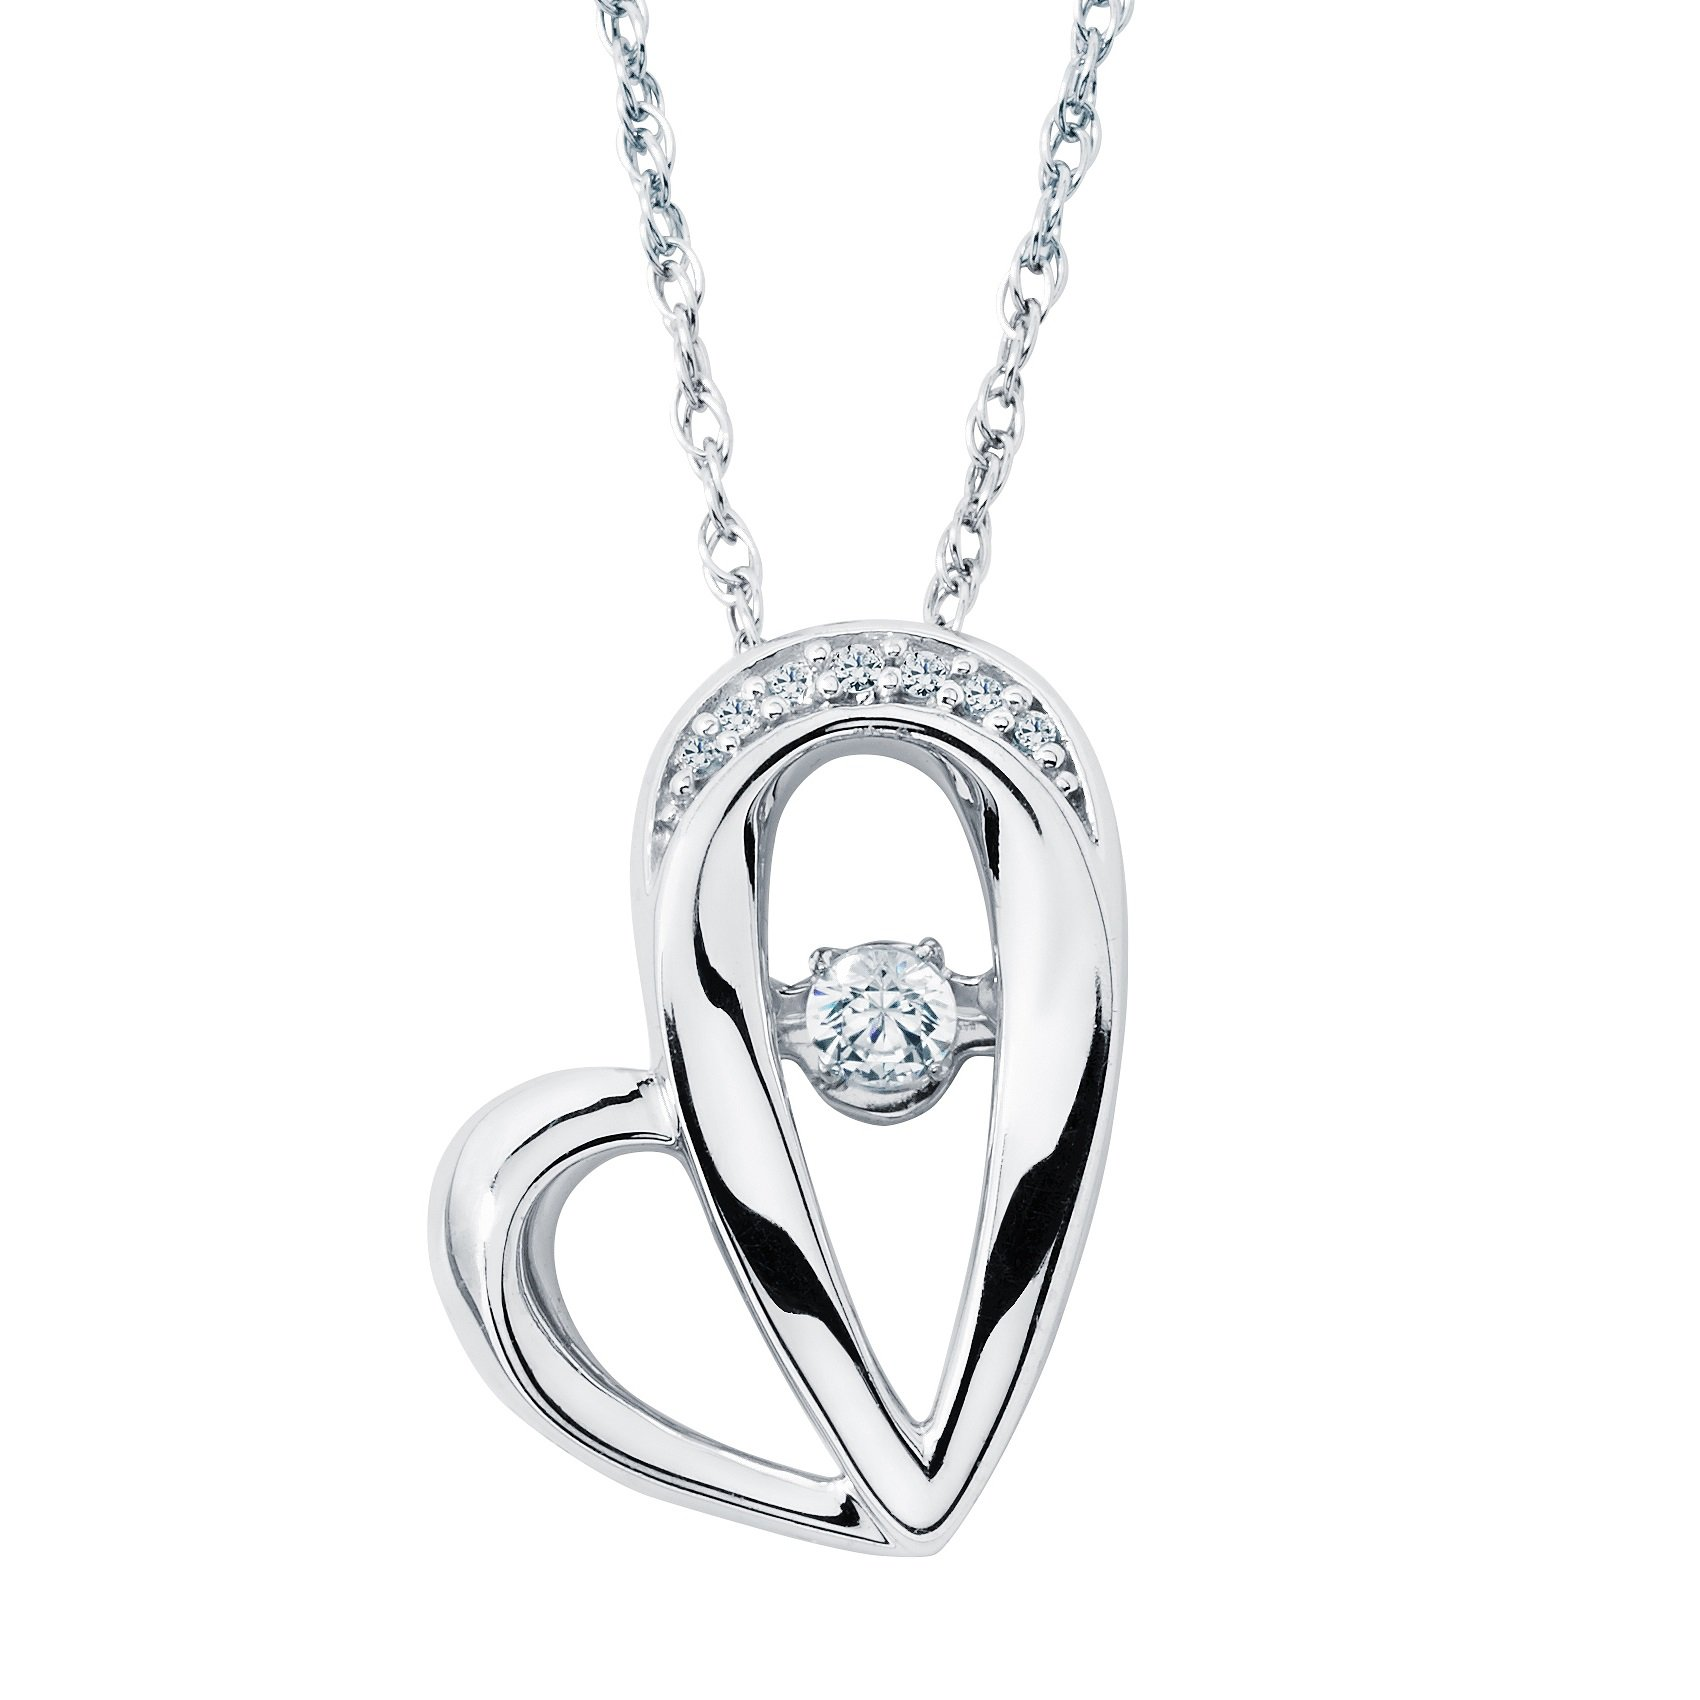 Brilliance in Motion 925 Sterling Silver 1/10 Ctw. Floating Diamond Open Heart Pendant Necklace with 18 Inch Chain